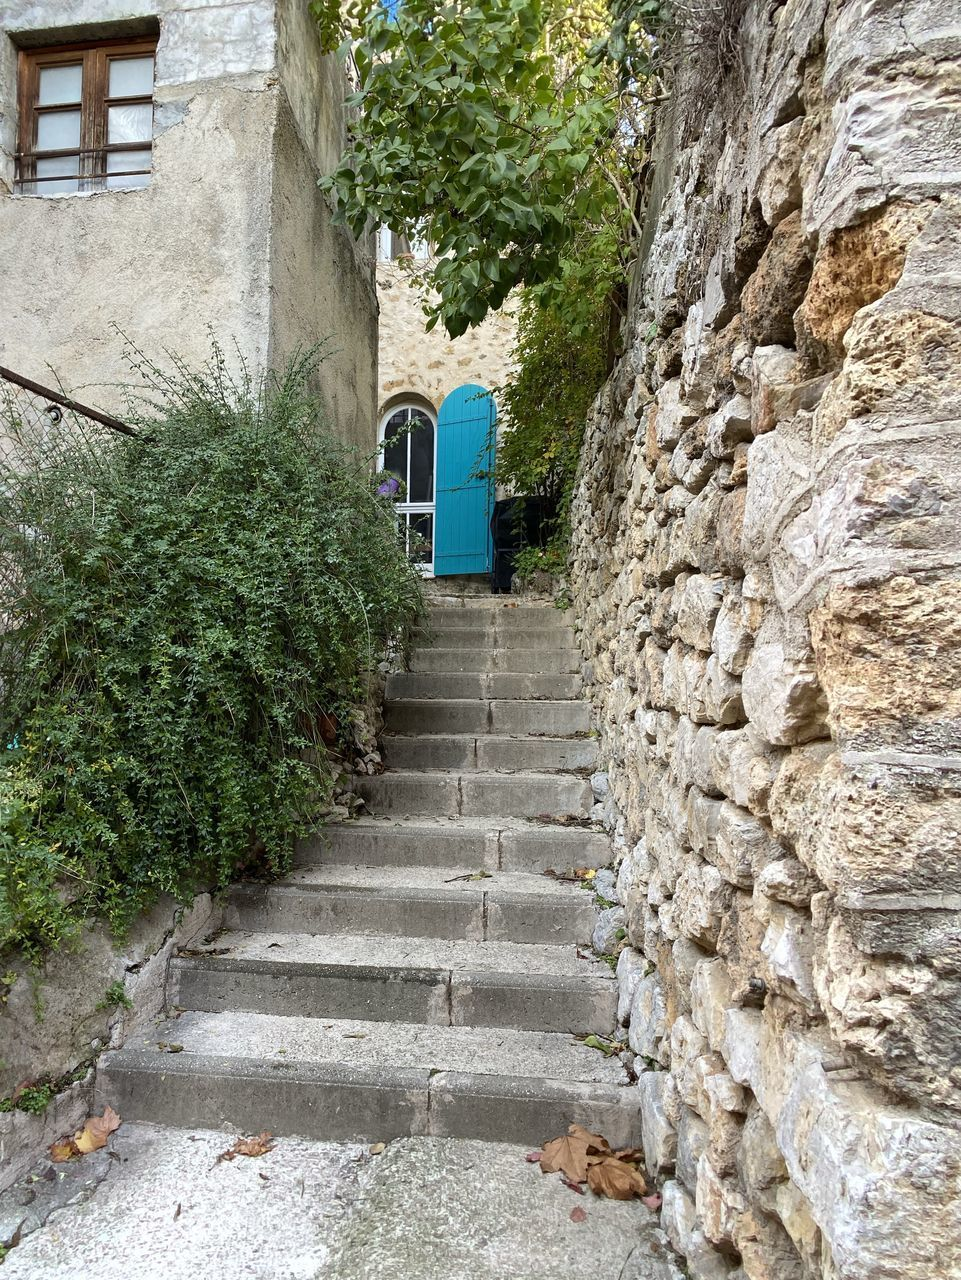 architecture, staircase, built structure, direction, steps and staircases, the way forward, plant, building, building exterior, no people, solid, day, stone wall, wall - building feature, wall, growth, nature, stone material, entrance, outdoors, alley